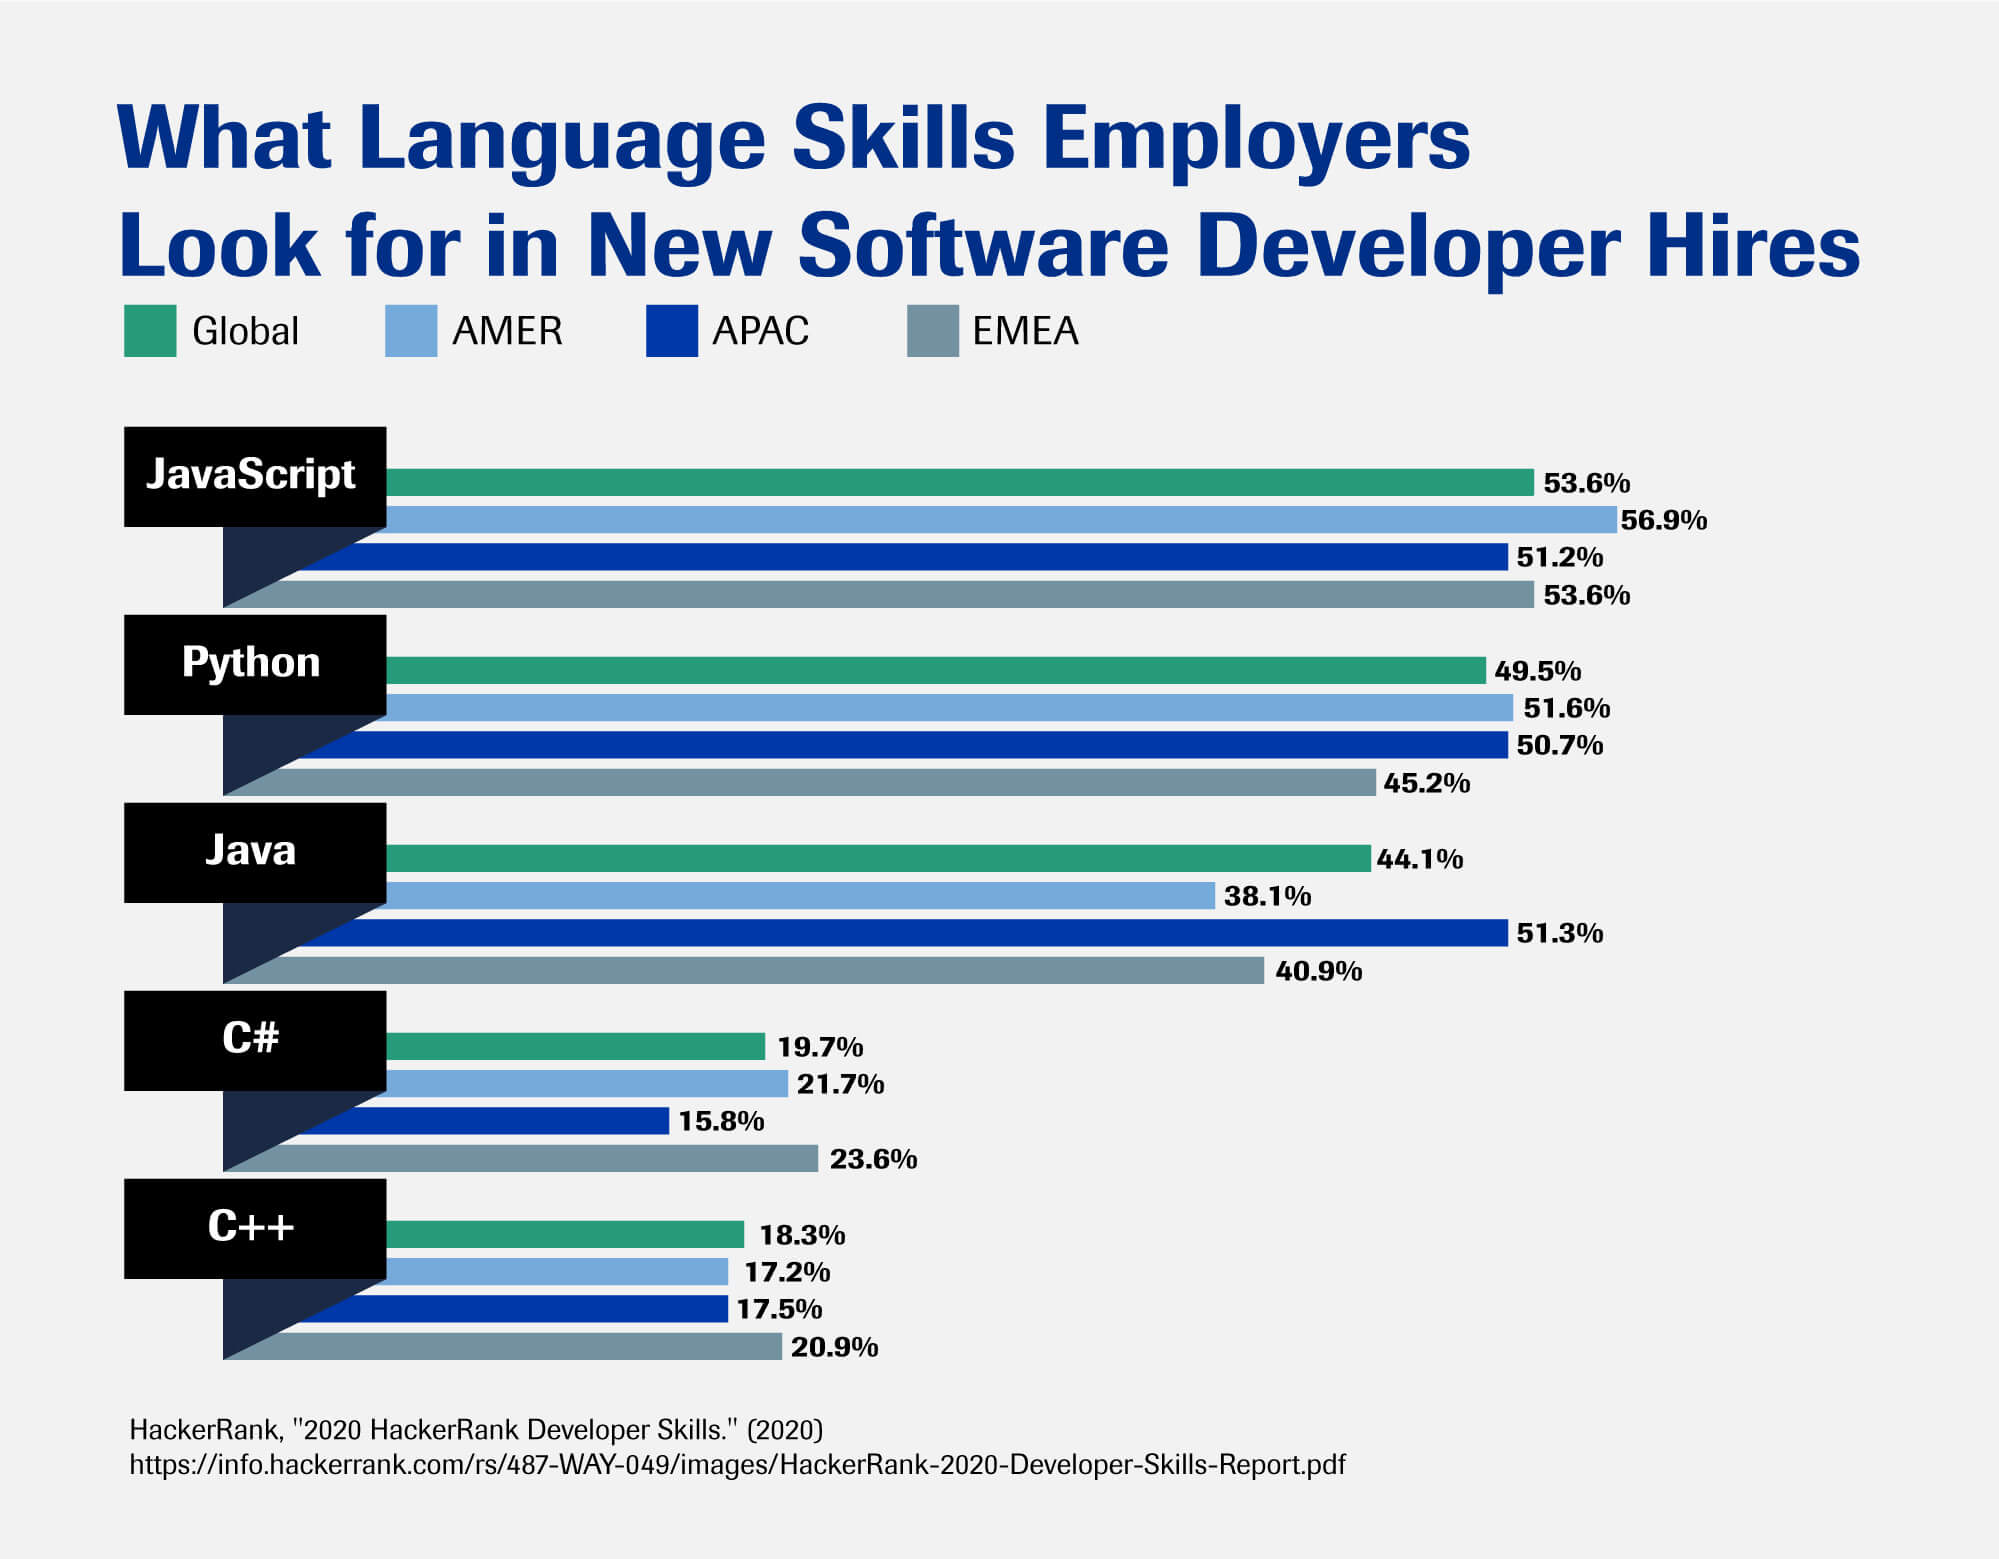 A graph showing the language skills employers look for in software developers